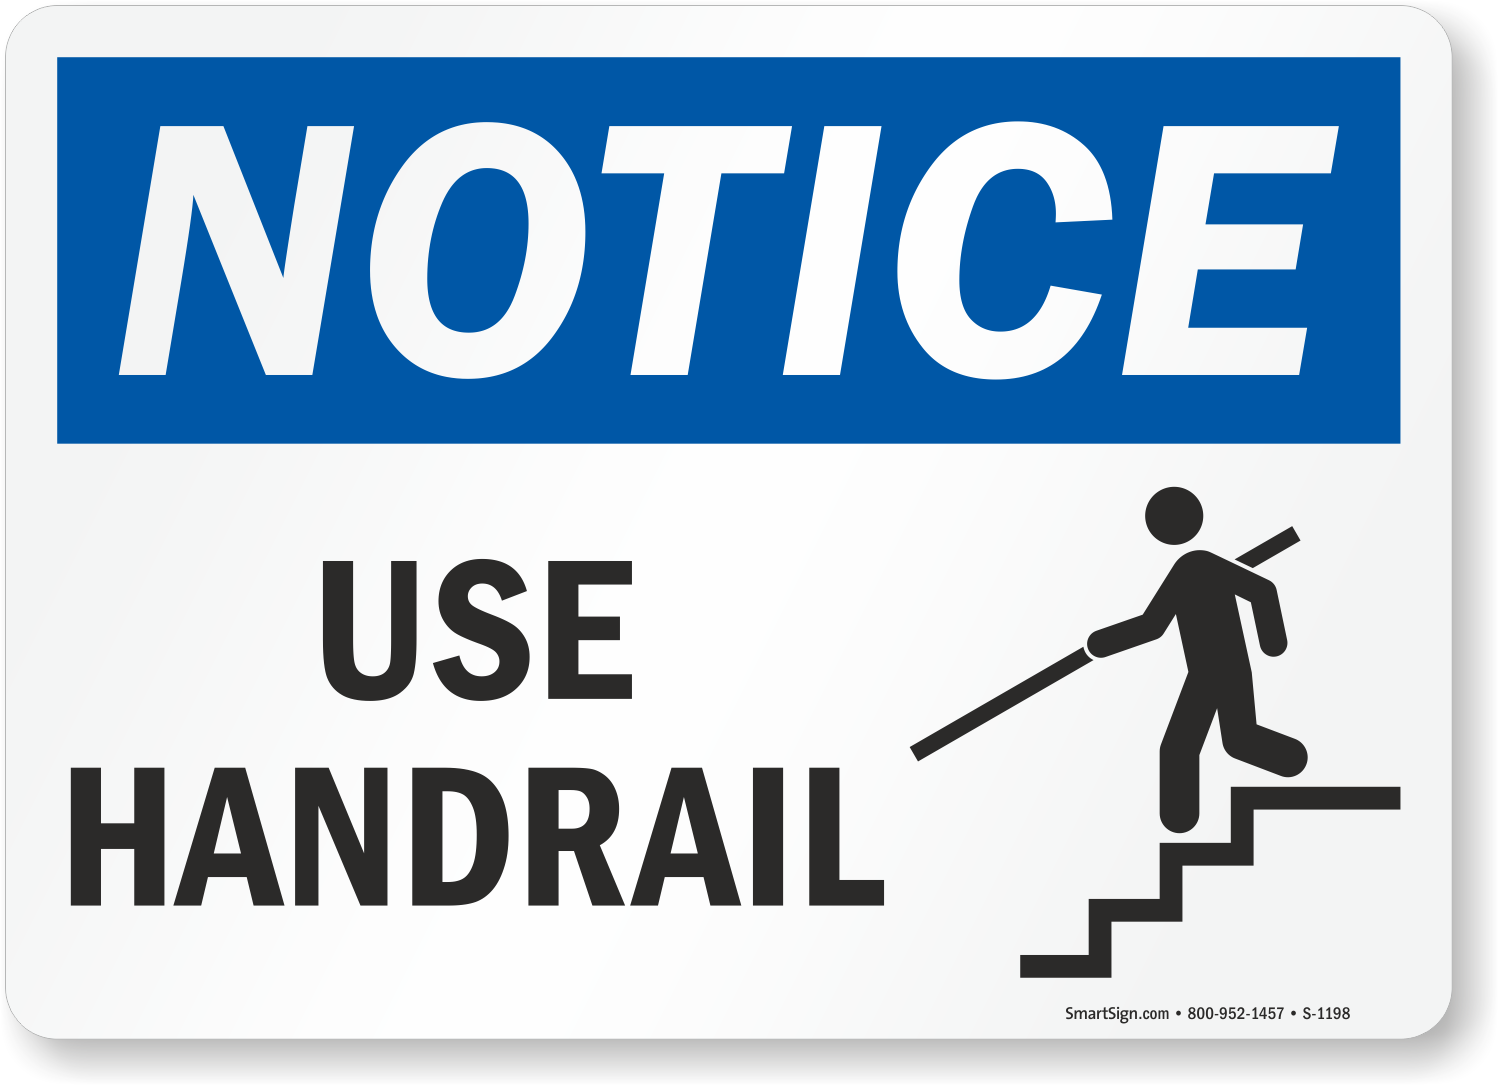 Handrail Signs | Use Handrail Signs - MySafetySign com